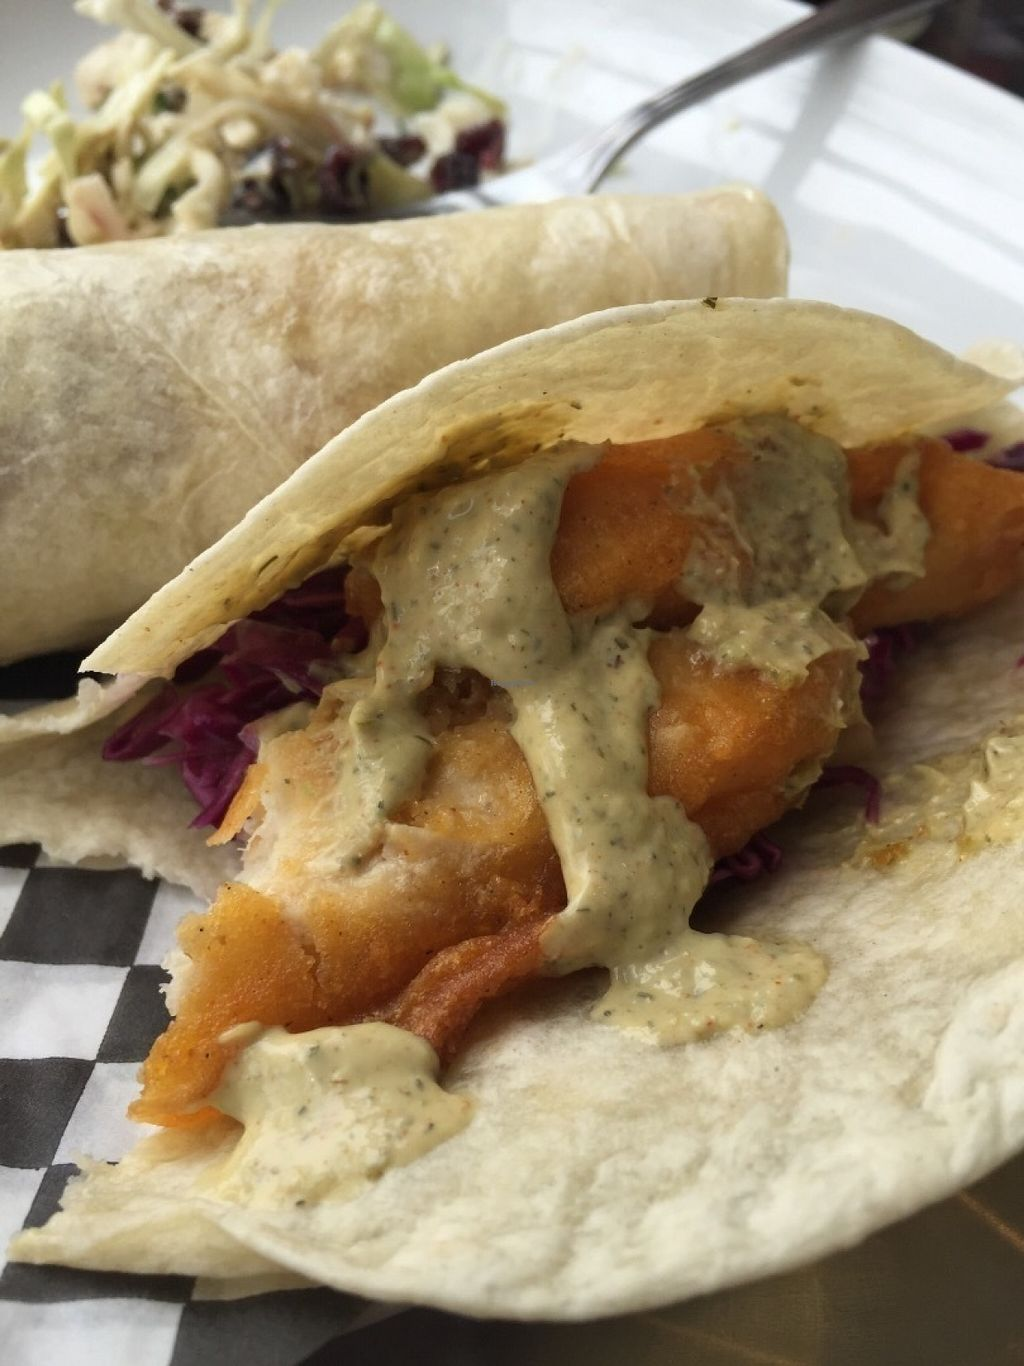 """Photo of Yam Chops  by <a href=""""/members/profile/StevieSurf"""">StevieSurf</a> <br/>Fishless Tacos - yum! <br/> July 12, 2016  - <a href='/contact/abuse/image/48004/159315'>Report</a>"""